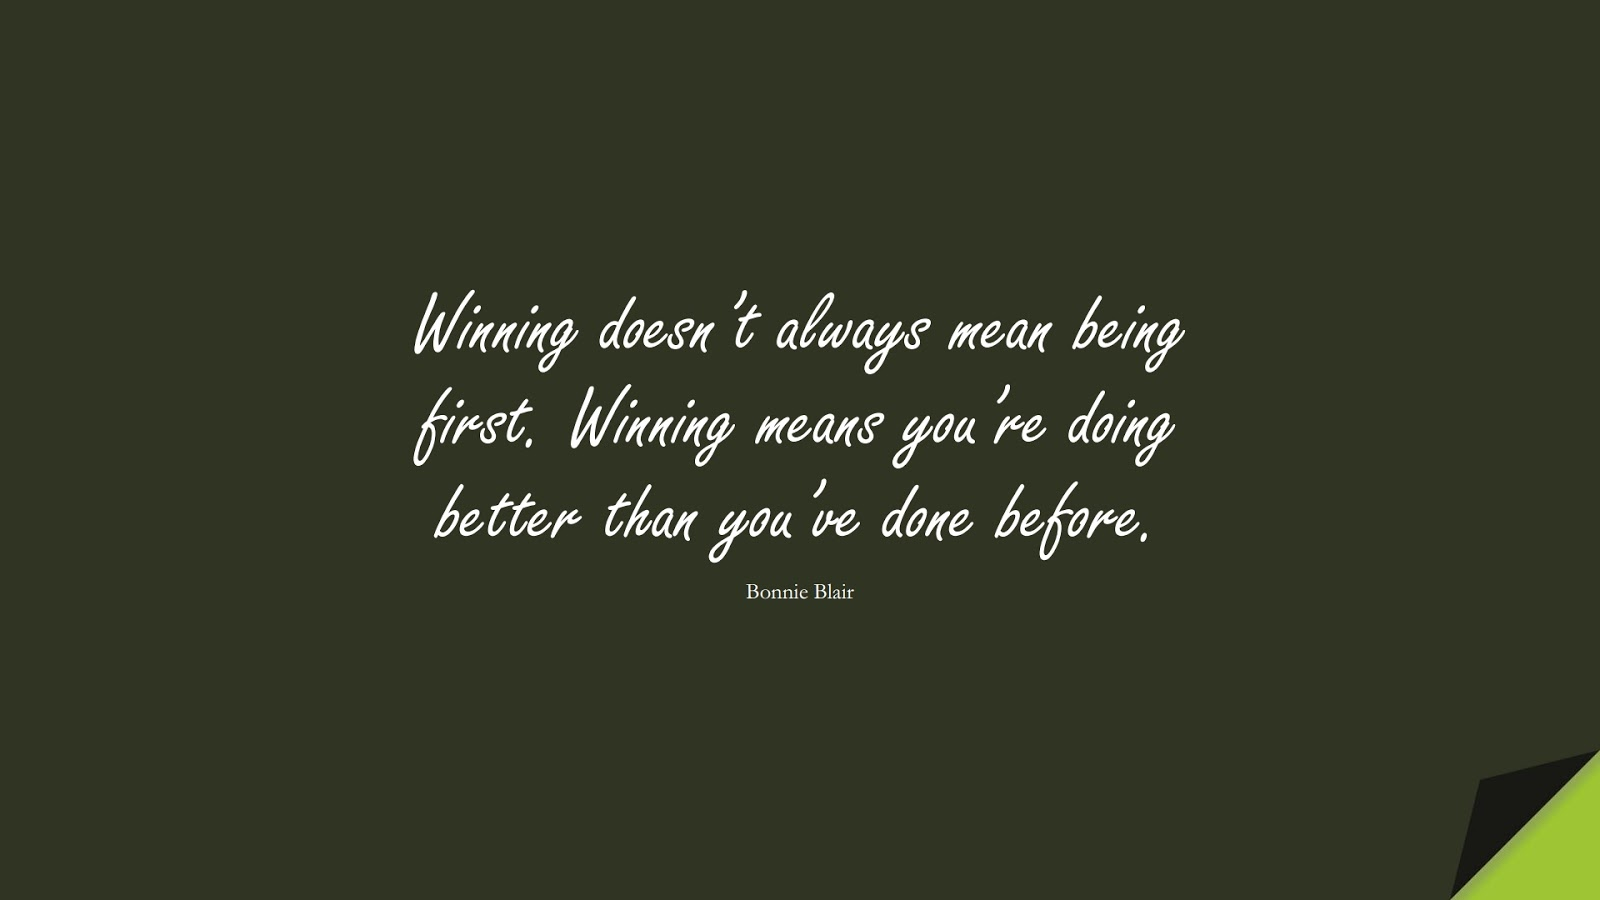 Winning doesn't always mean being first. Winning means you're doing better than you've done before. (Bonnie Blair);  #SuccessQuotes